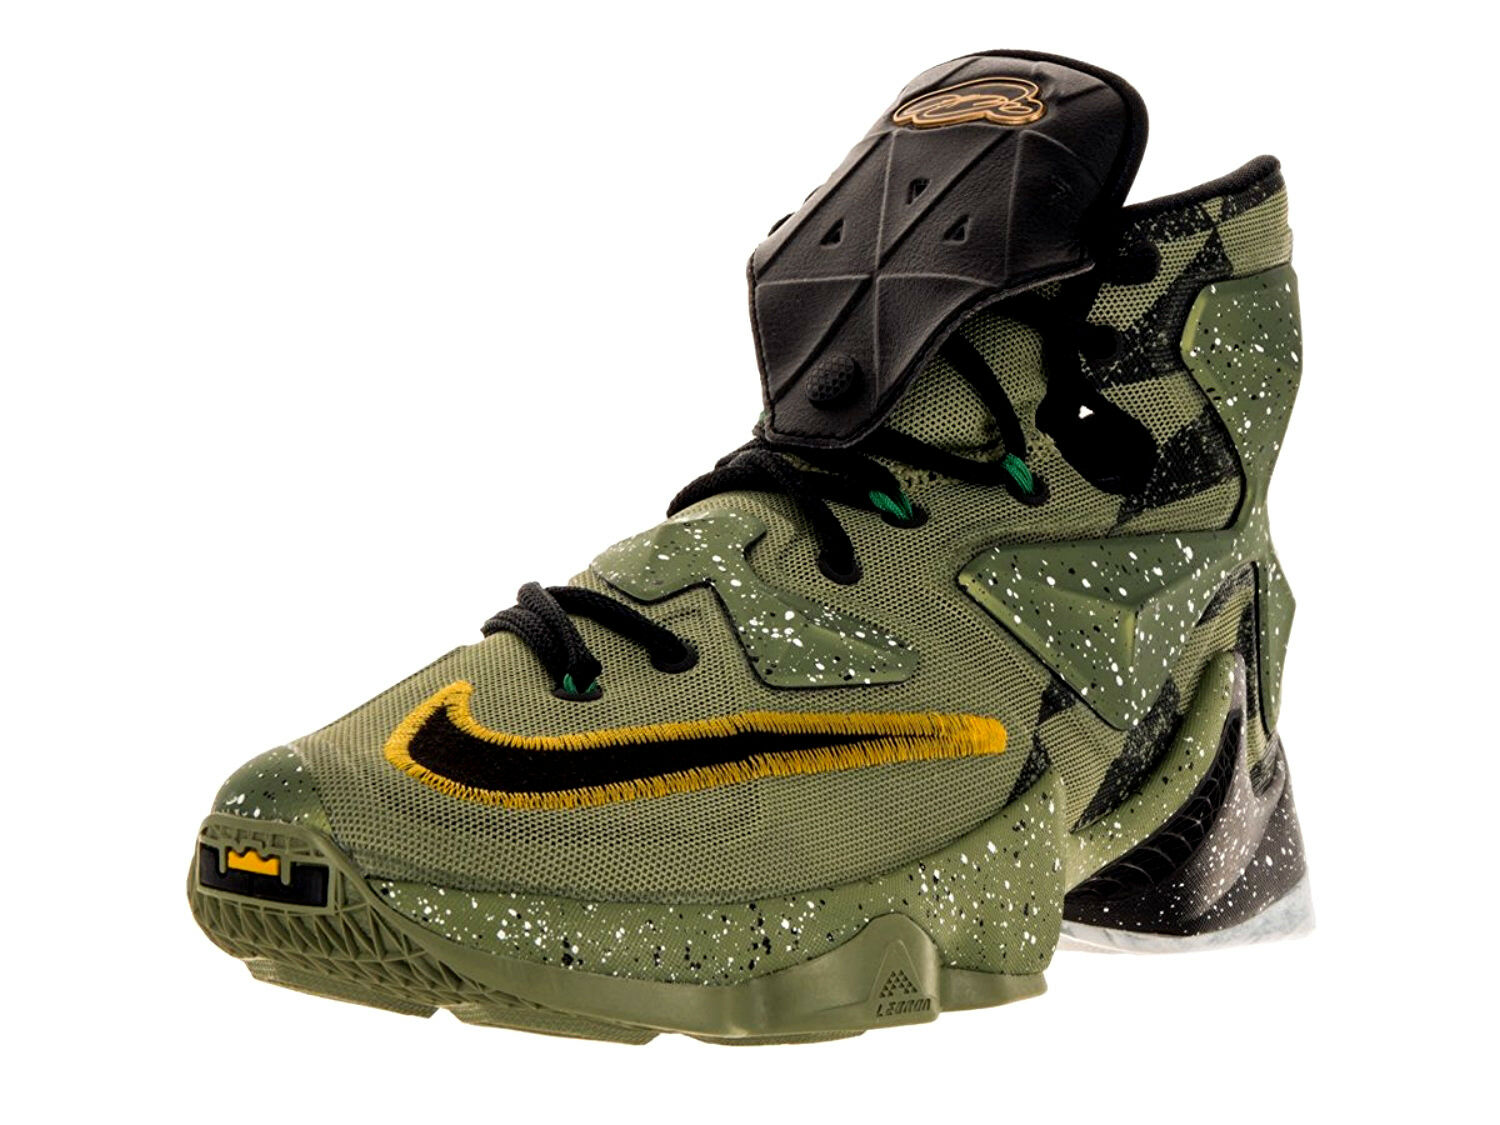 MENS NIKE LEBRON XIII 13 ALL STAR BASKETBALL SNEAKERS chaussures 835659-309 Taille 13